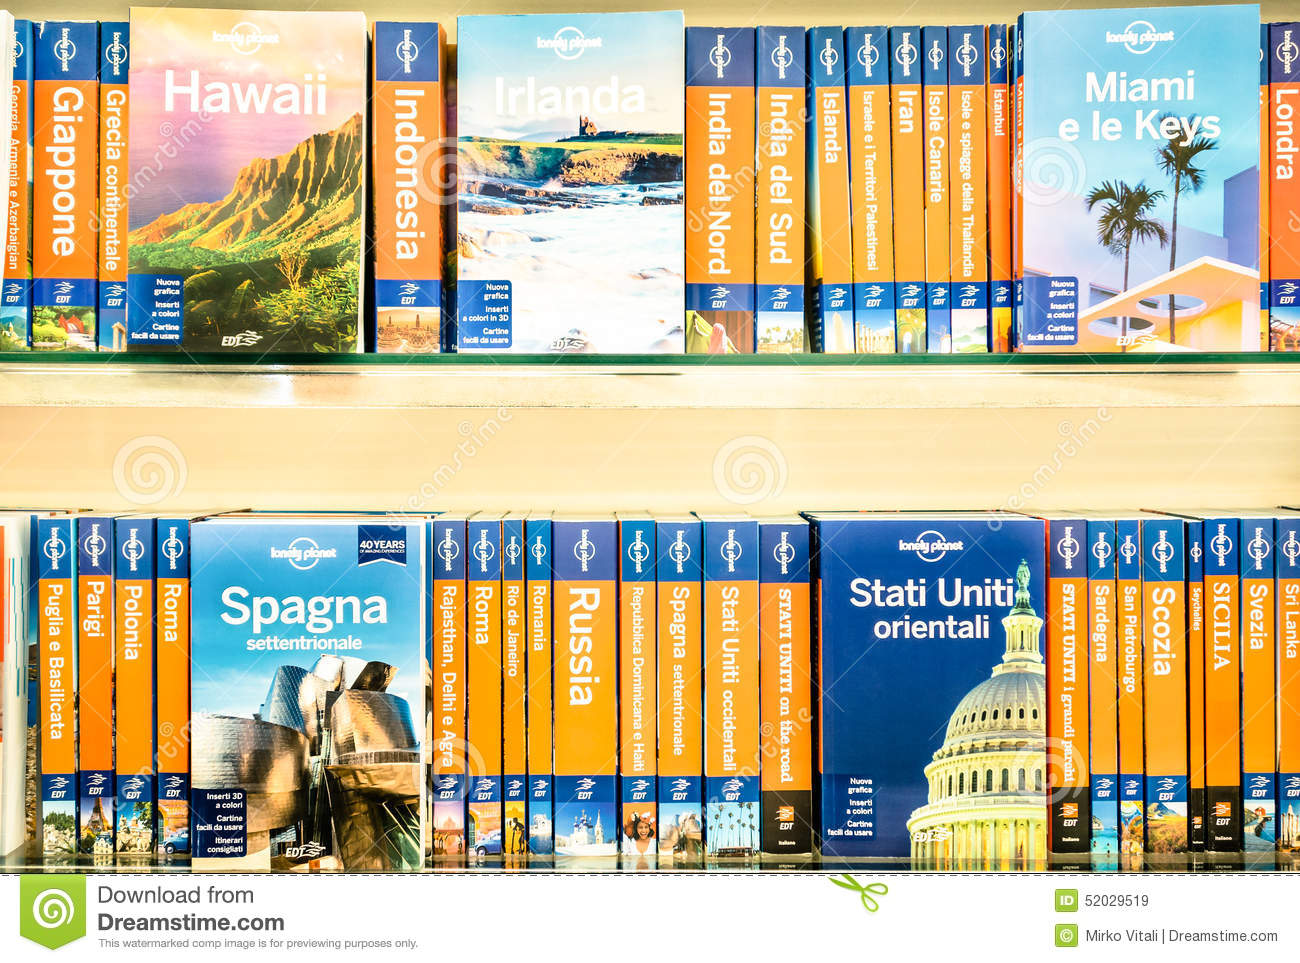 Largest Travel Guide Book Publisher In The World